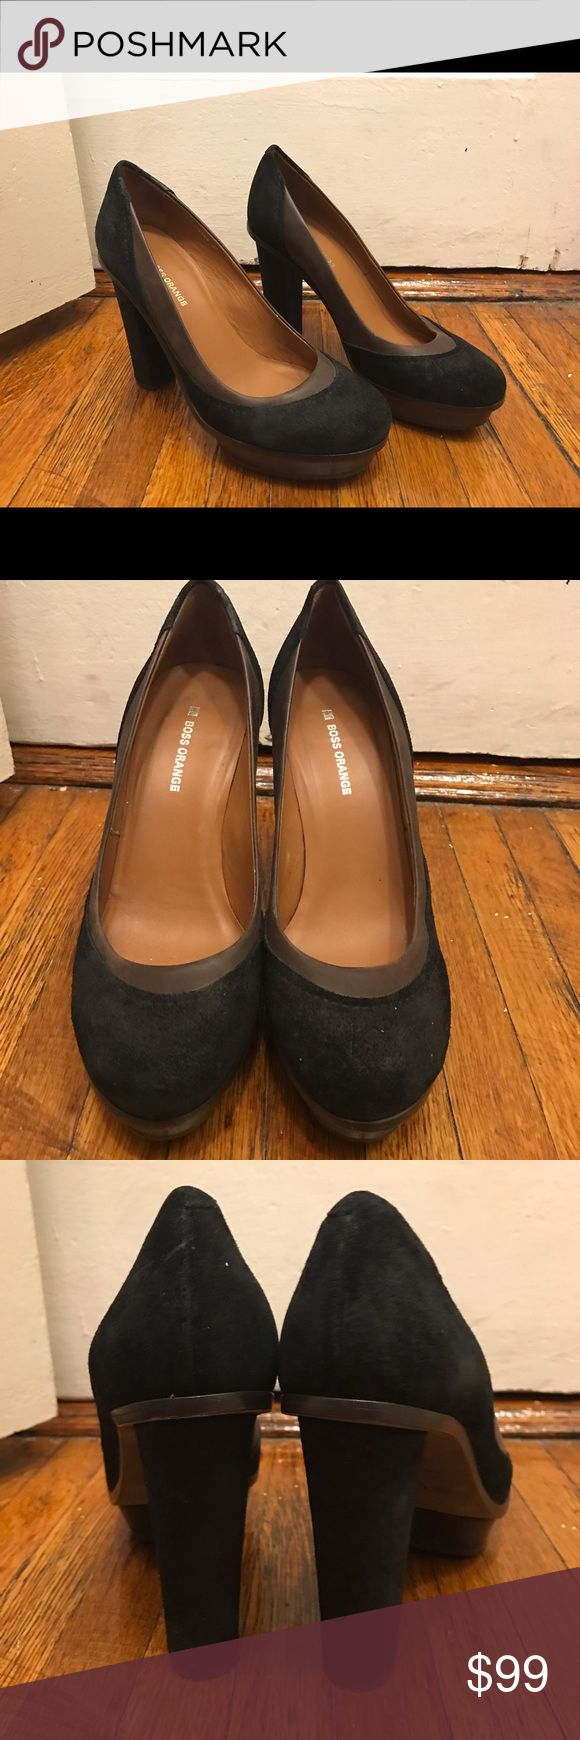 Boss Orange Platform Pumps Two tone platform pumps. Black suede with leather panel and a rubber sole. They're hardly used, almost brand new and in good condition. Offers Welcome :) BOSS ORANGE Shoes Platforms